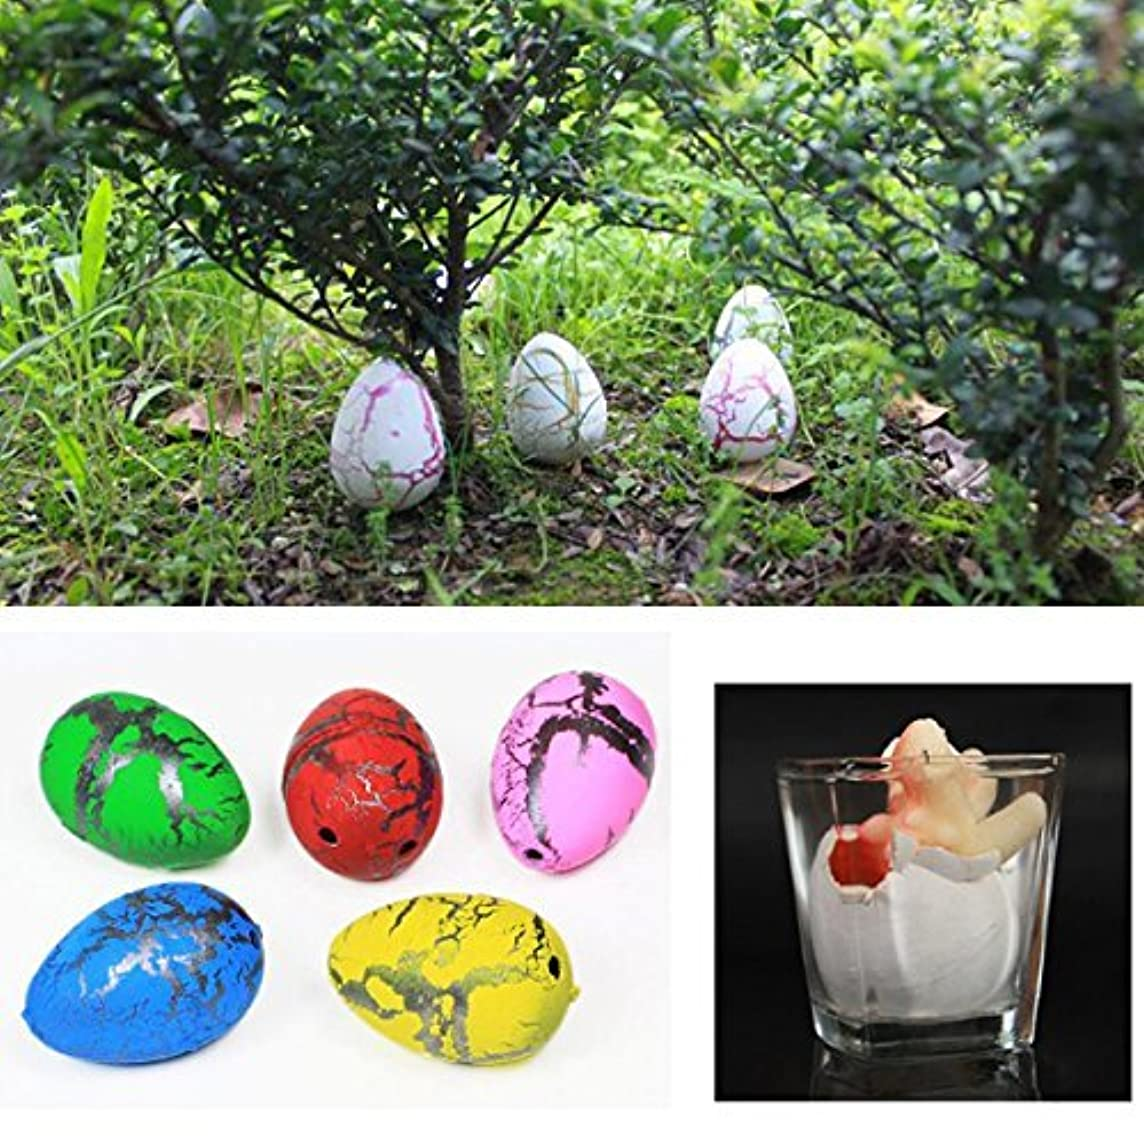 Science & Discovery Toys - Hatch Animal Planet Surprise Animals Easter Science - 2x Medium Funny Magic Growing Hatching Dinosaur Eggs Christmas Child Gifts 4×3.5cm -